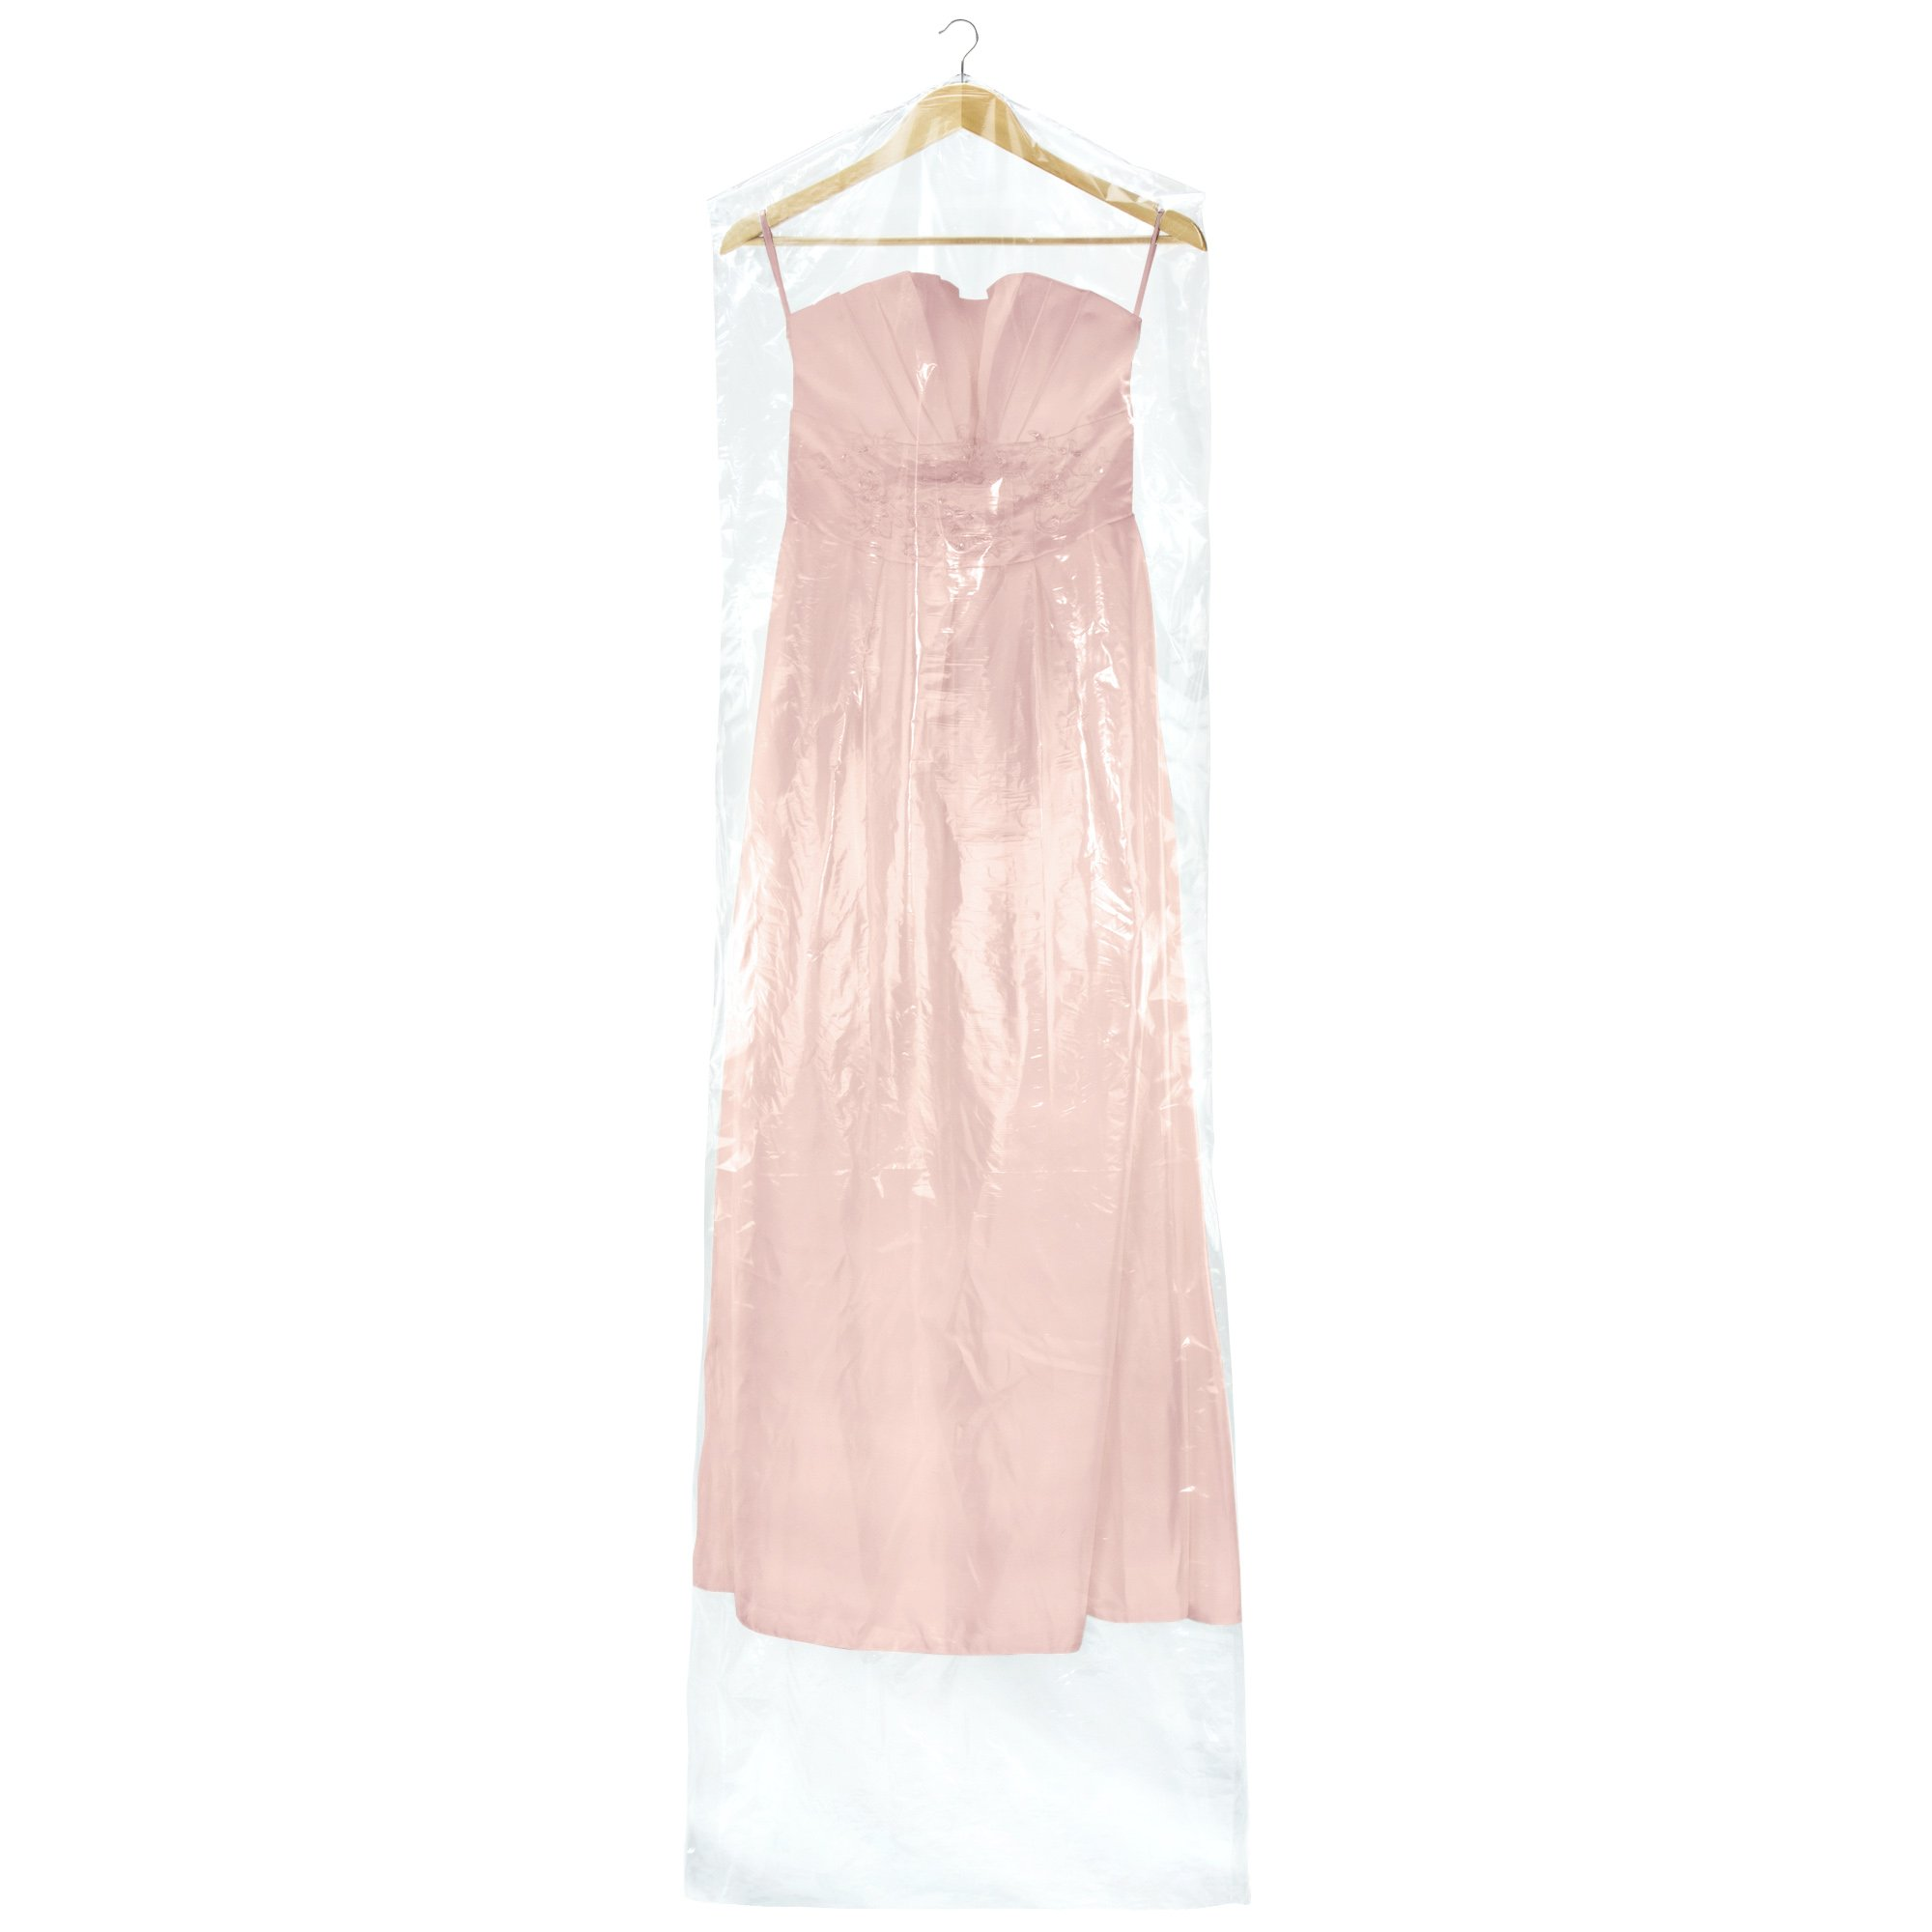 Buy Hangerworld Pack of 6 Clear Polythene Full Length Gown Dress ...